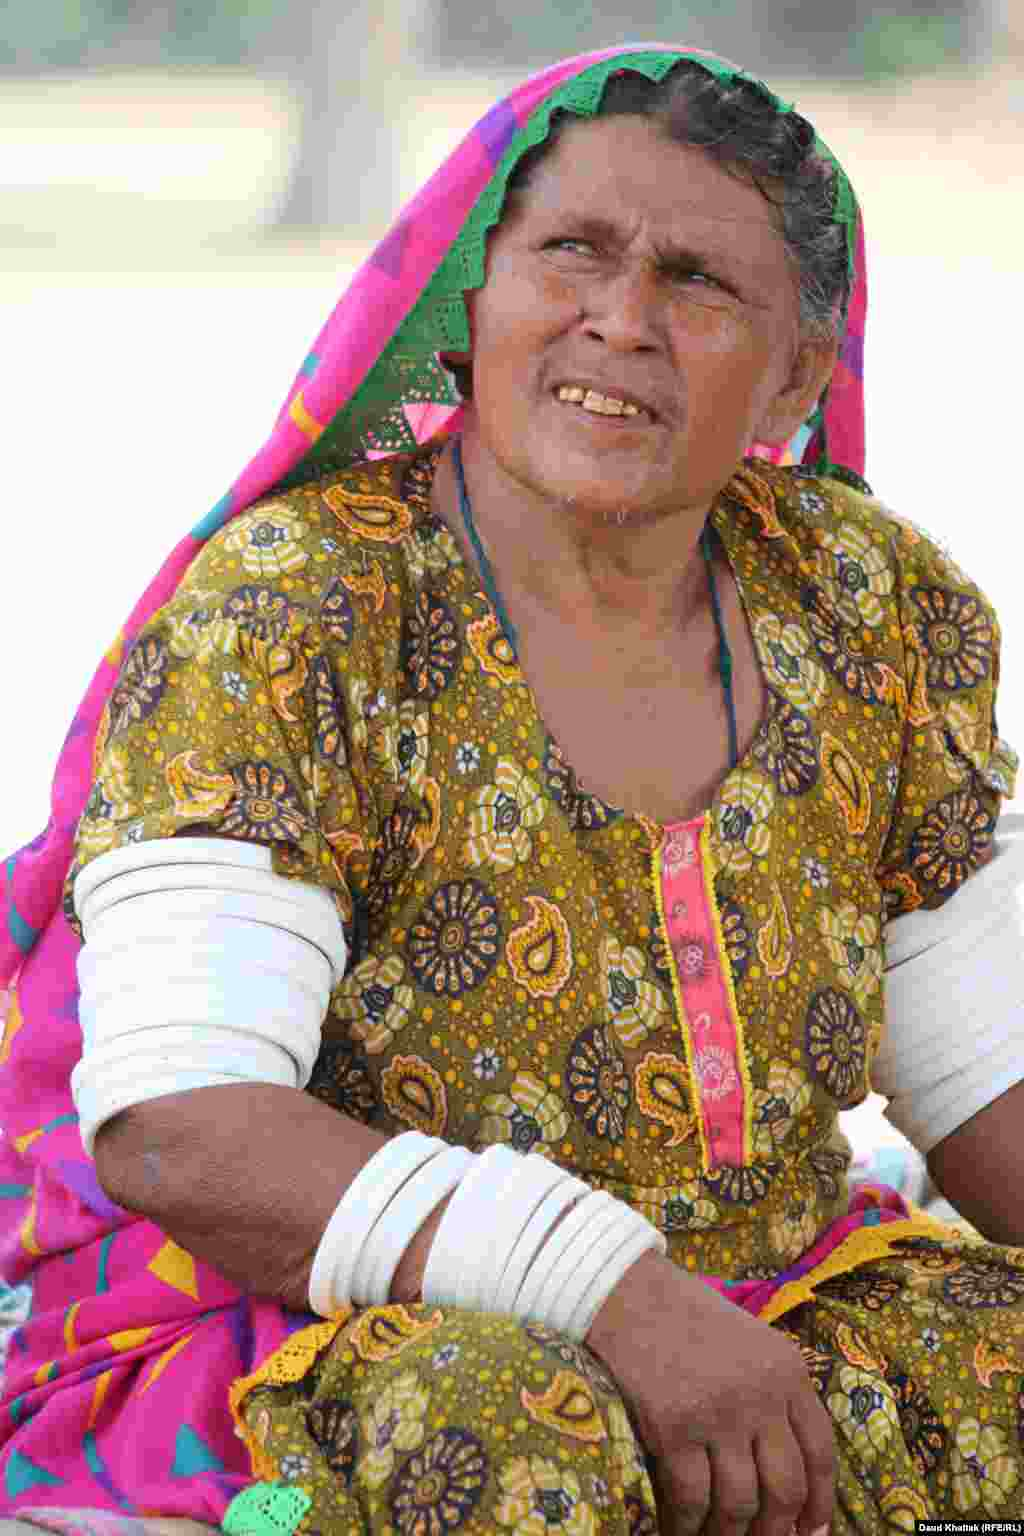 """Kallan Bibi, 50, says she has never left the area and does not like to travel by car, bus, or truck. """"I am happy here, but the heat wave is very strong these days and I am also getting old,"""" she says."""